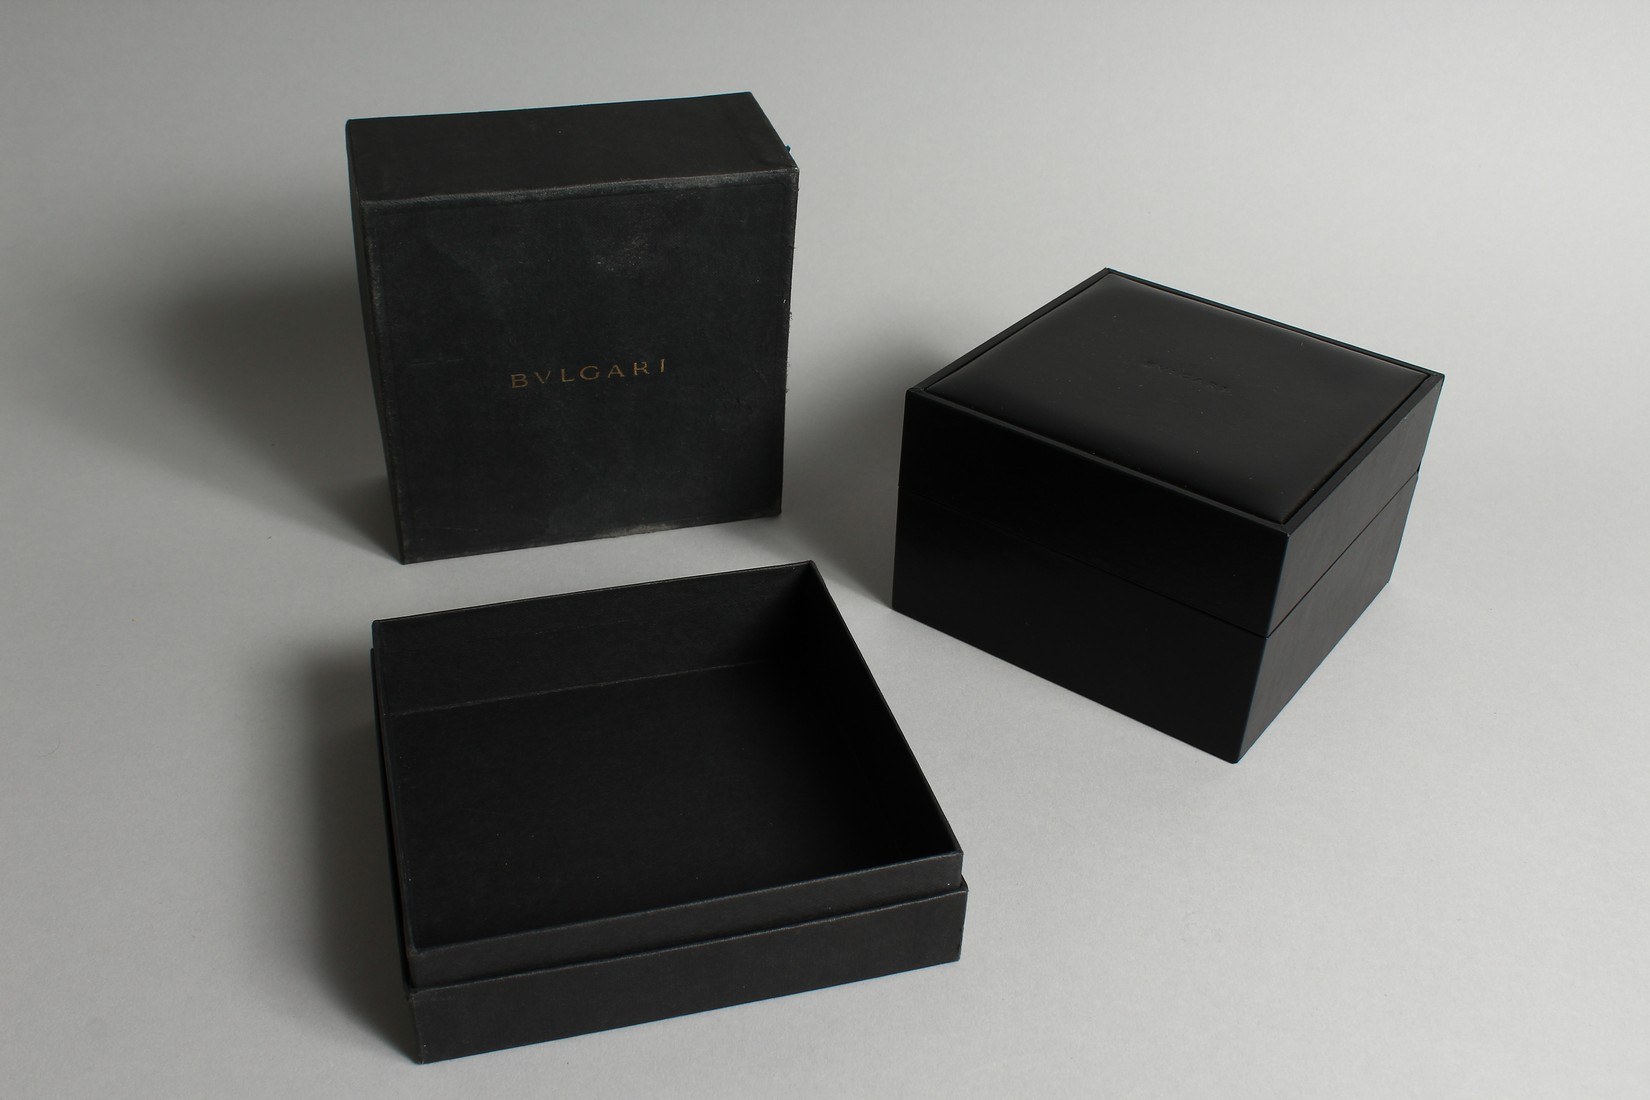 AN 18CT. GOLD BULGARI WRIST WATCH with leather strap, in original box. - Image 6 of 10